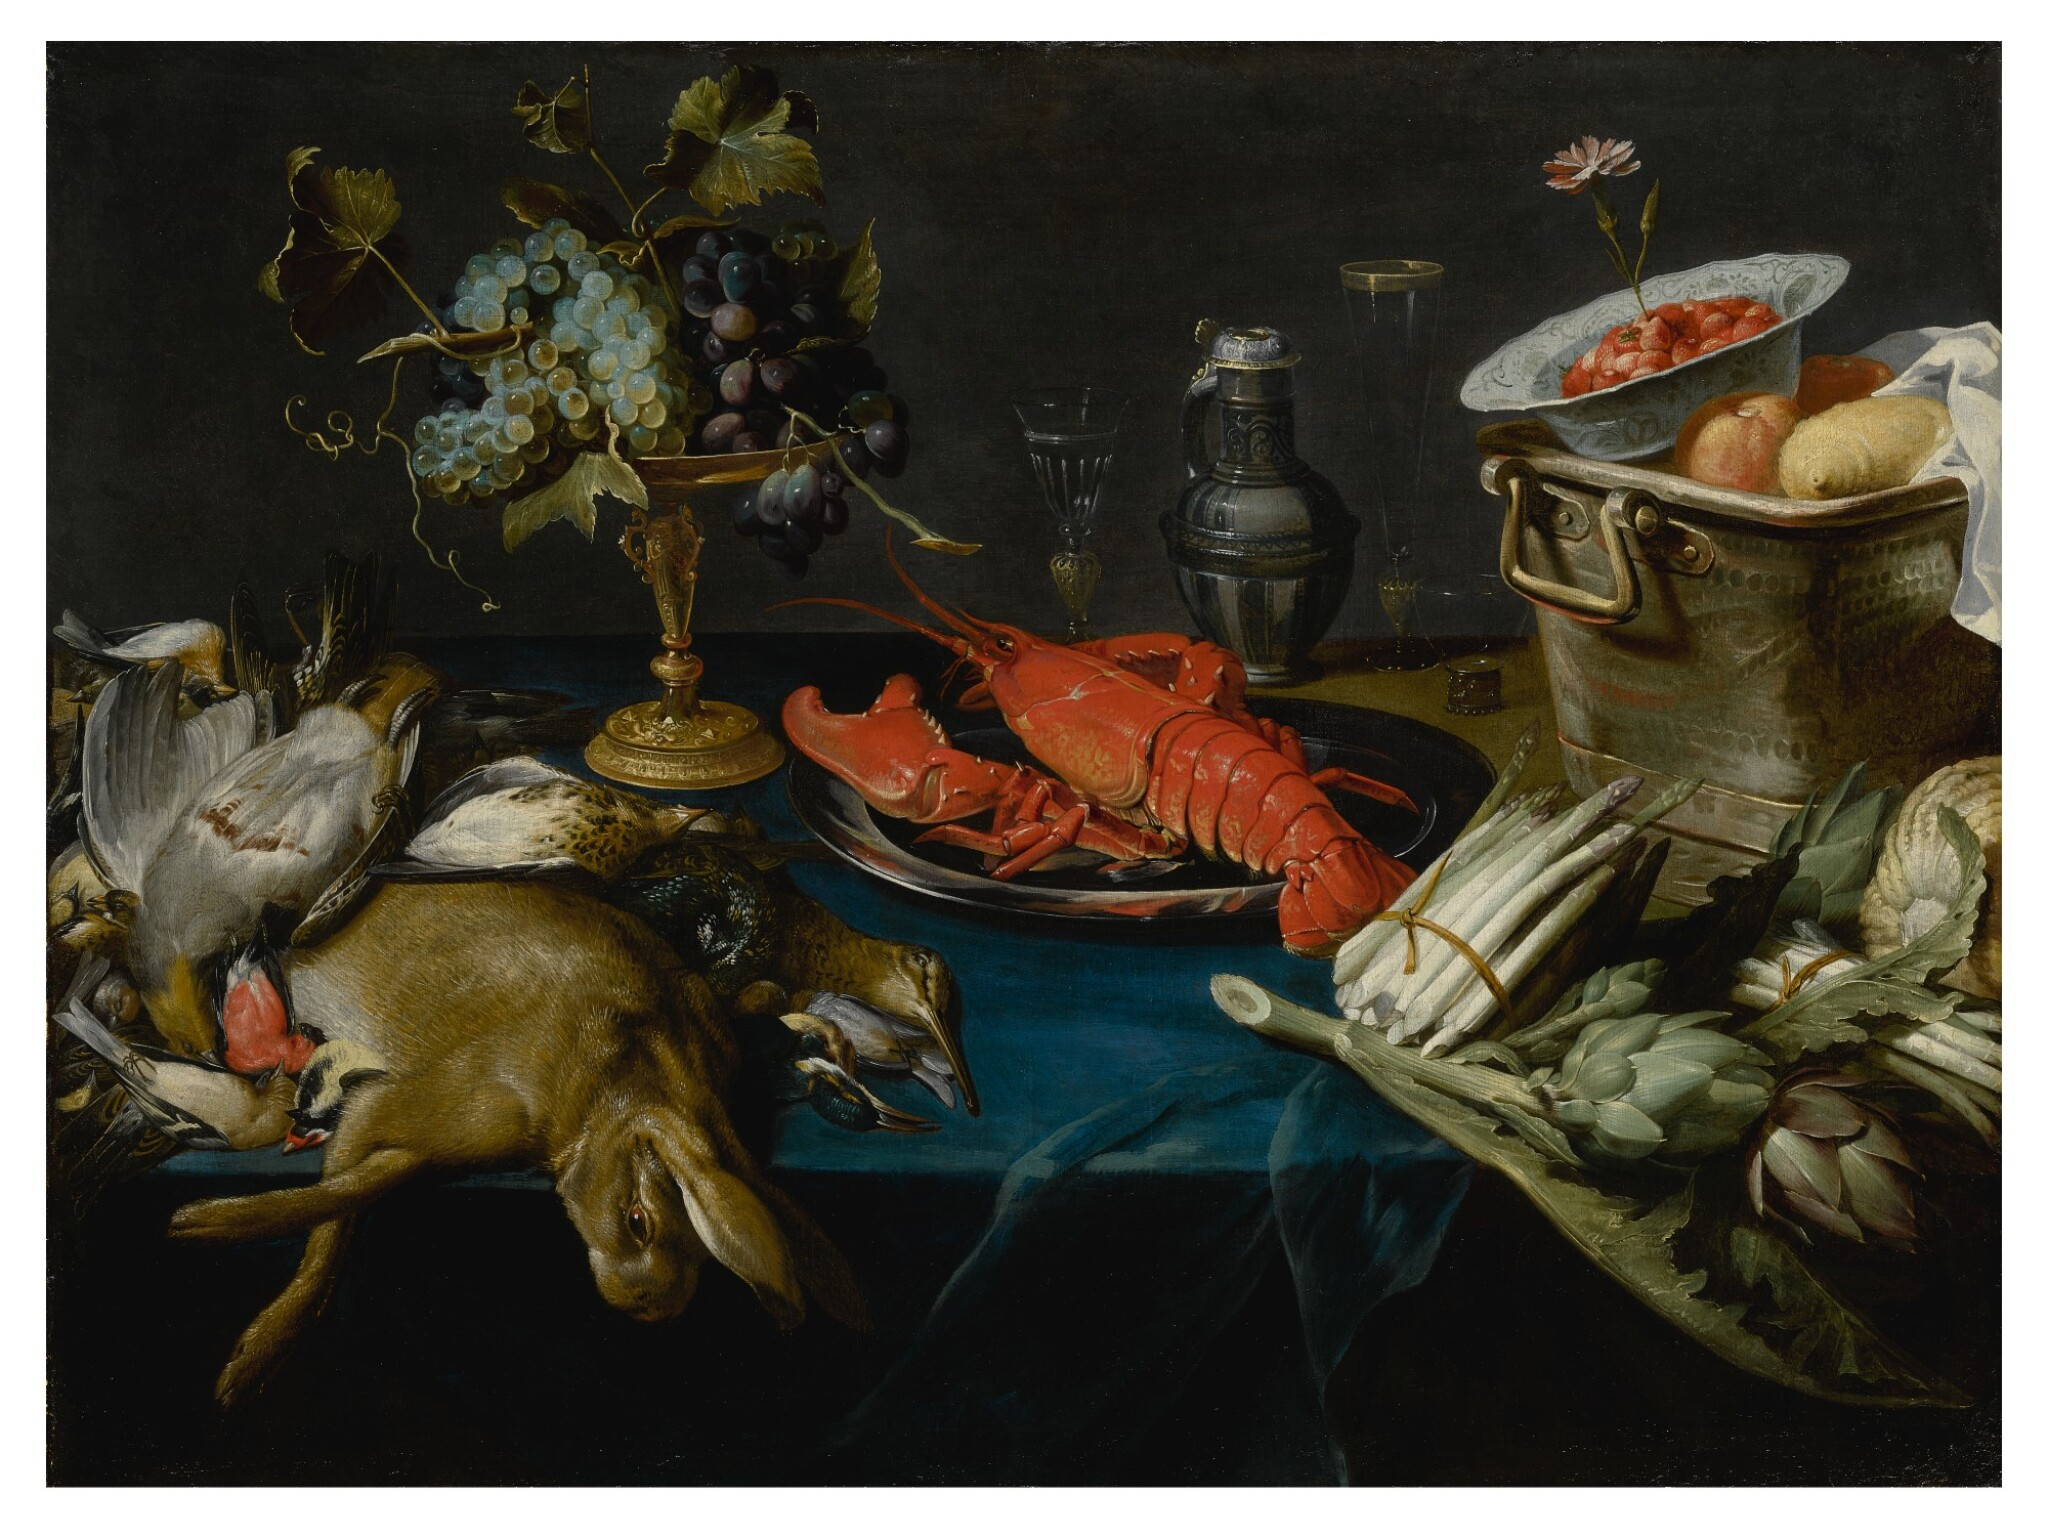 WORKSHOP OF FRANS SNIJDERS | STILL LIFE WITH A LOBSTER ON A SILVER DISH, A DEAD HARE AND OTHER GAME, BLUE AND WHITE GRAPES ON A SILVER-GILT TAZZA, ARTICHOKES, ASPARAGUS, A WAN-LI KRAAK BOWL WITH STRAWBERRIES IN A COPPER BUCKET, ALL ARRANGED ON A TABLE DRAPED WITH A BLUE VELVET CLOTH